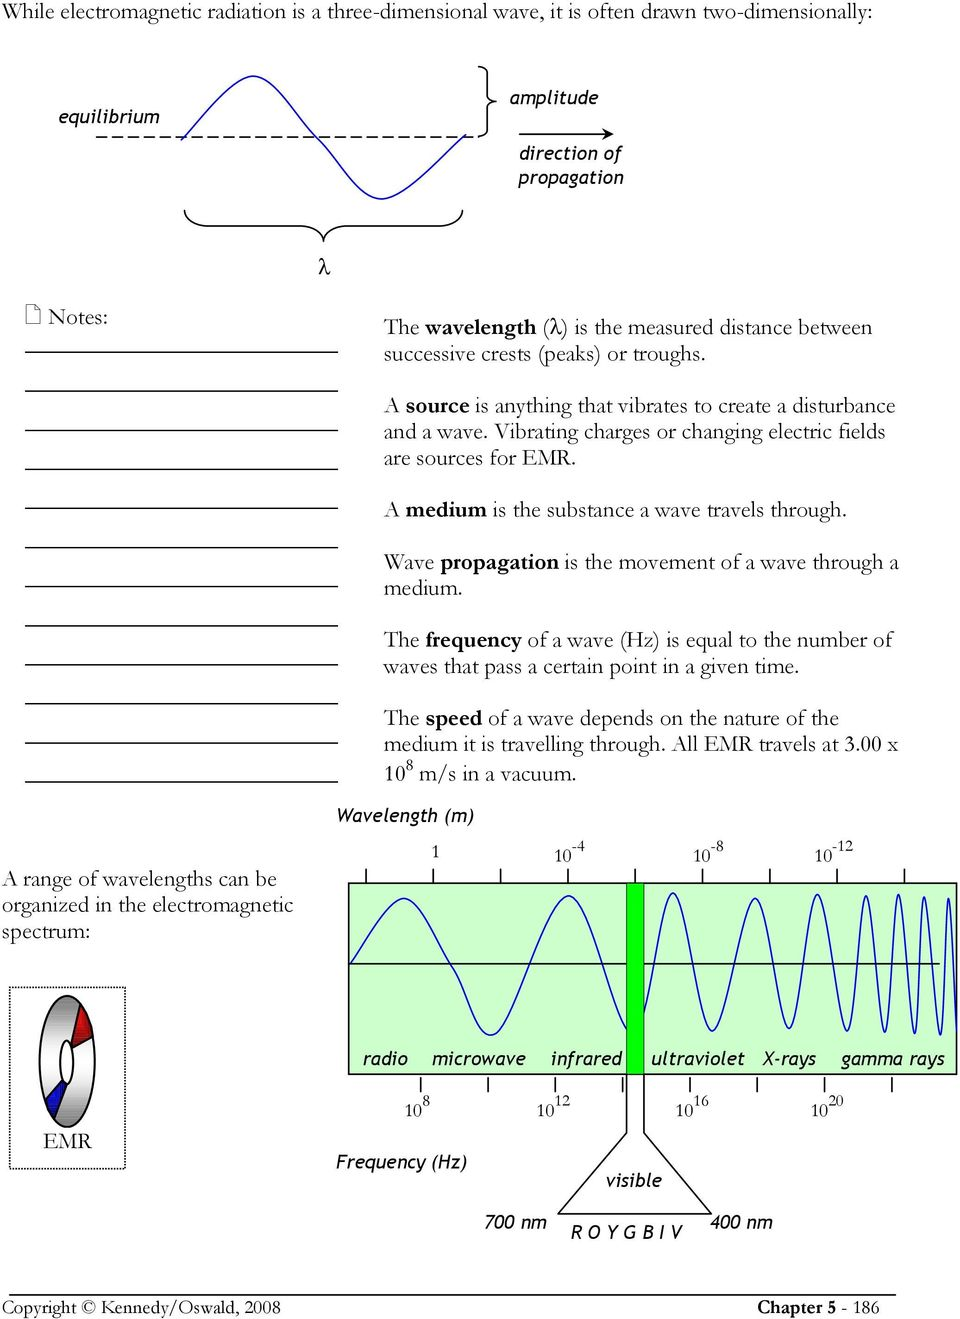 Introduction In Physics Light Is Referred To As Electromagnetic Radio Waves Diagram The Basic Shape Of Wave A Medium Substance Travels Through Propagation Movement